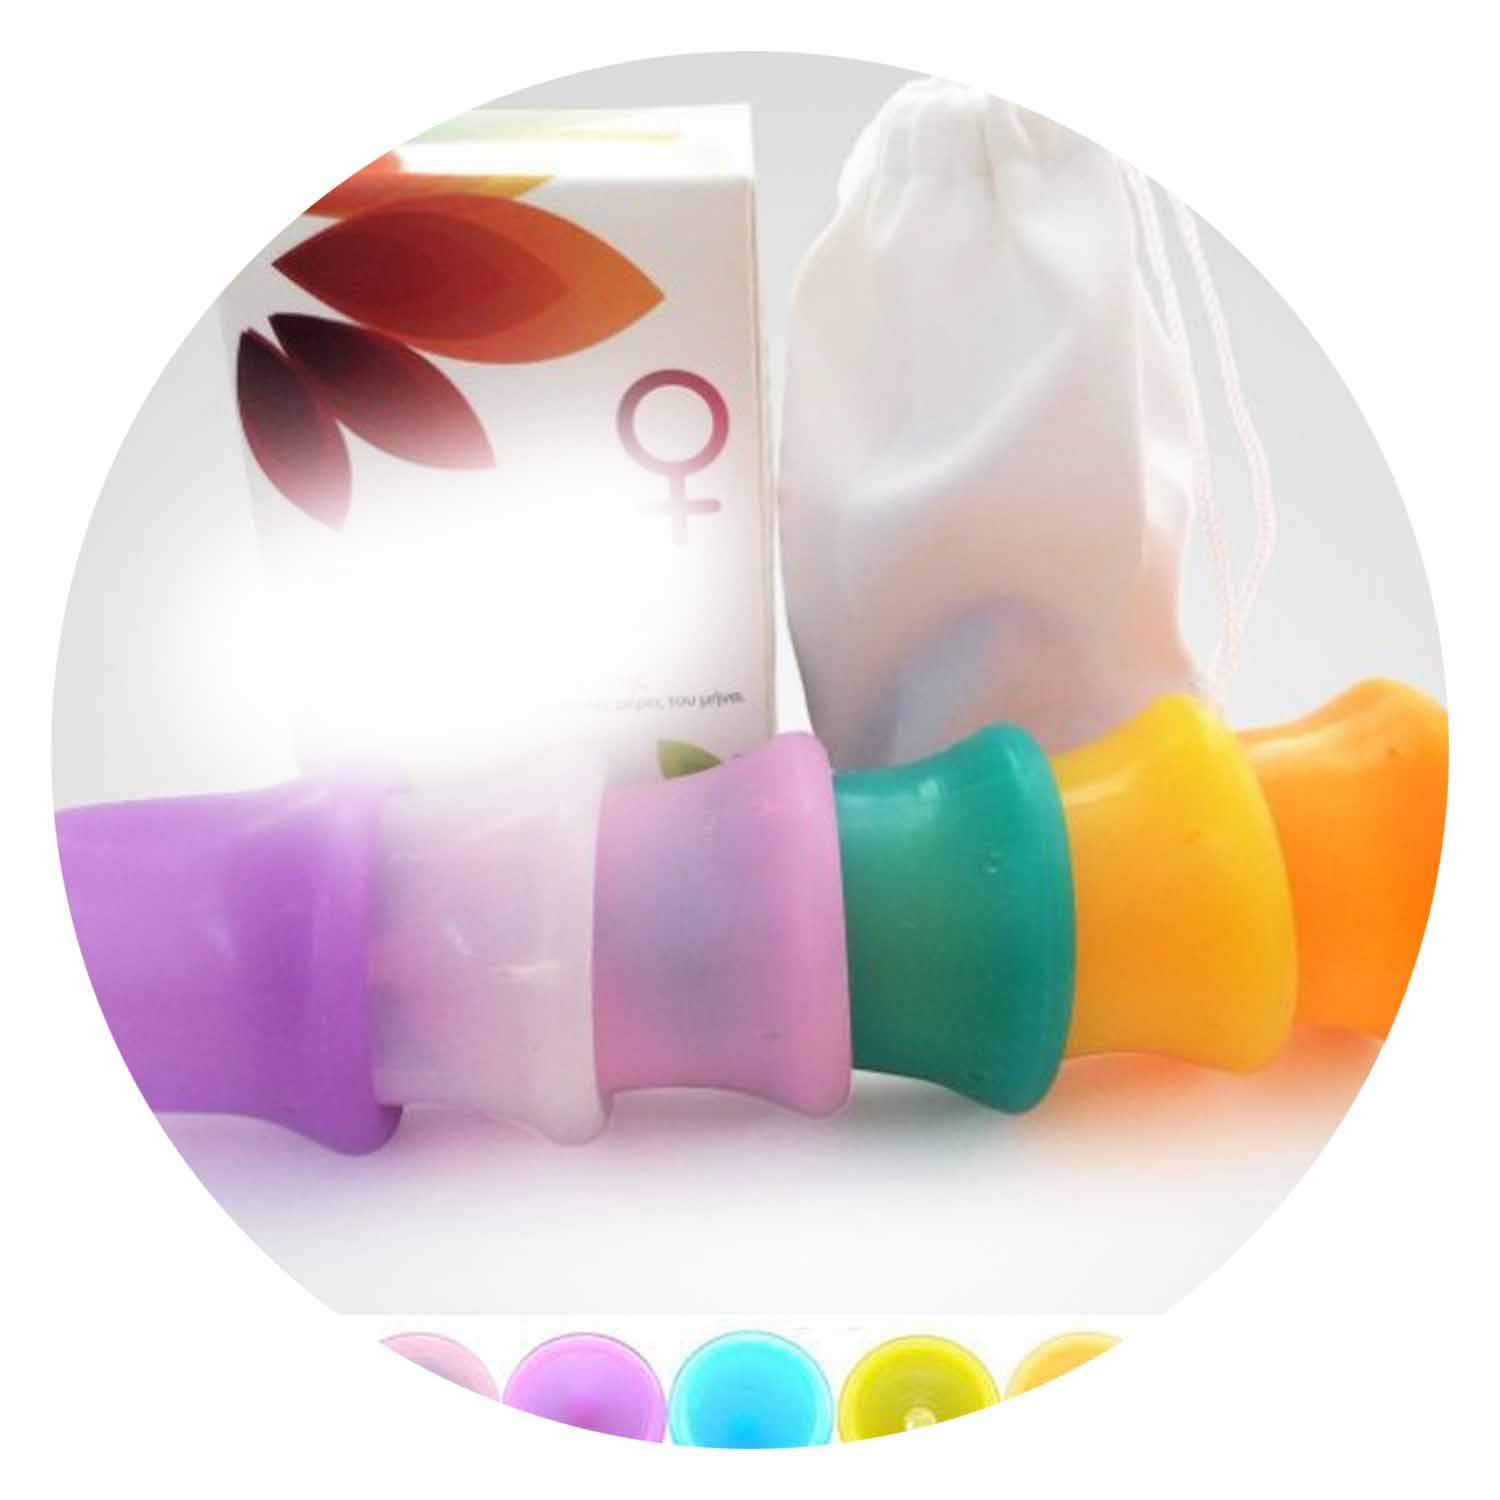 300pcs New Arriving Reusable Grade Silicone Menstrual Cup/y Cup Feminine Hygiene Product for Femcup 6 crs Choose